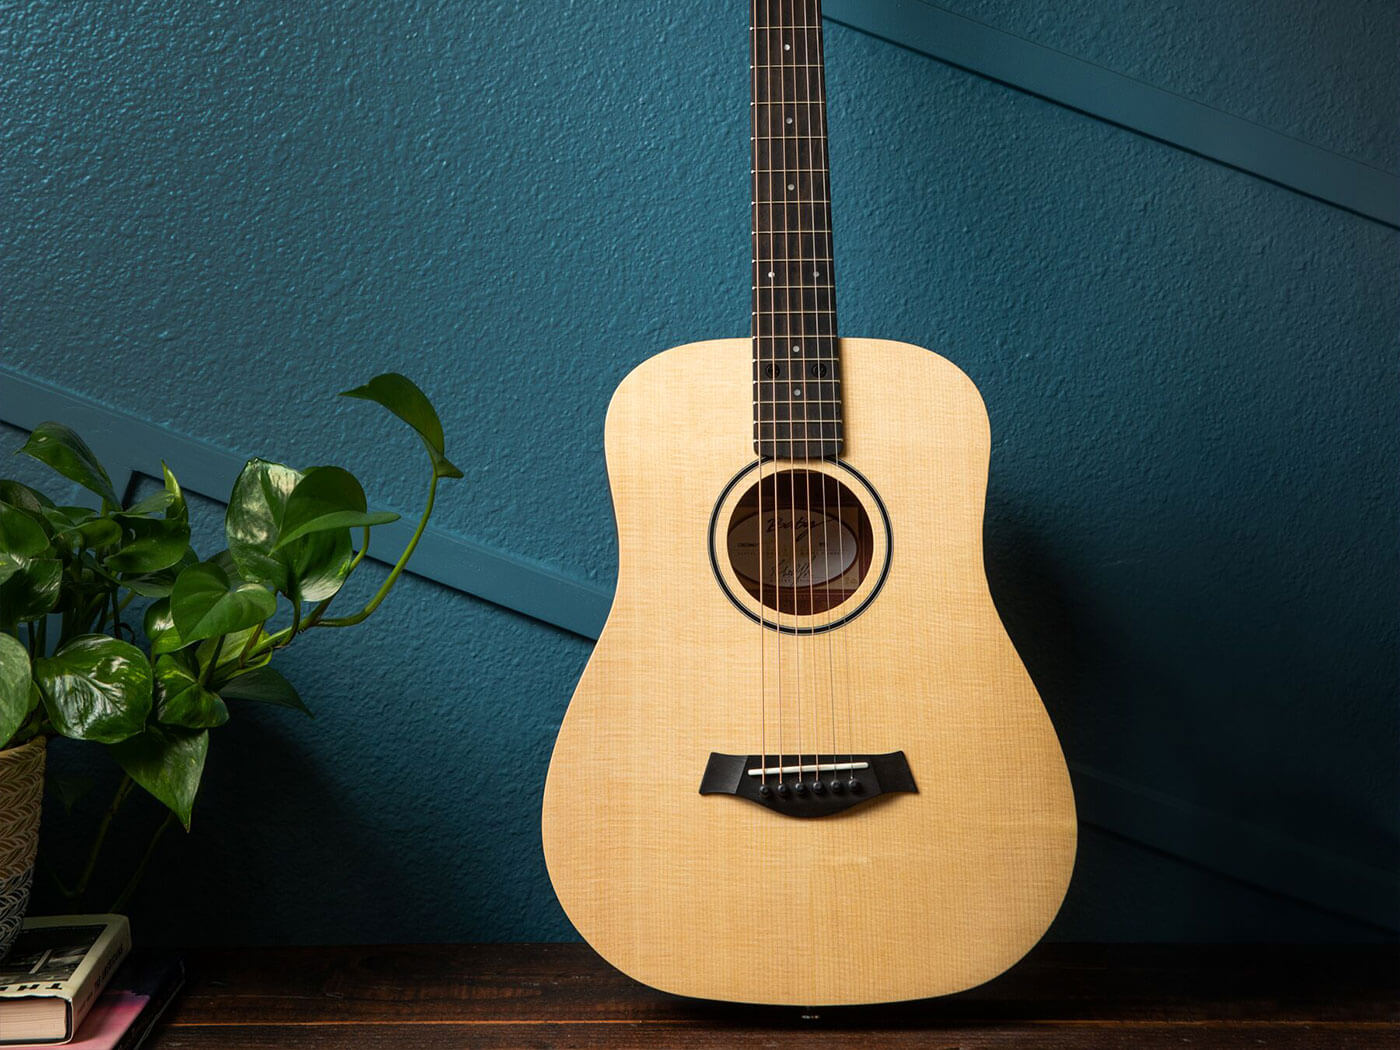 The Taylor BT1